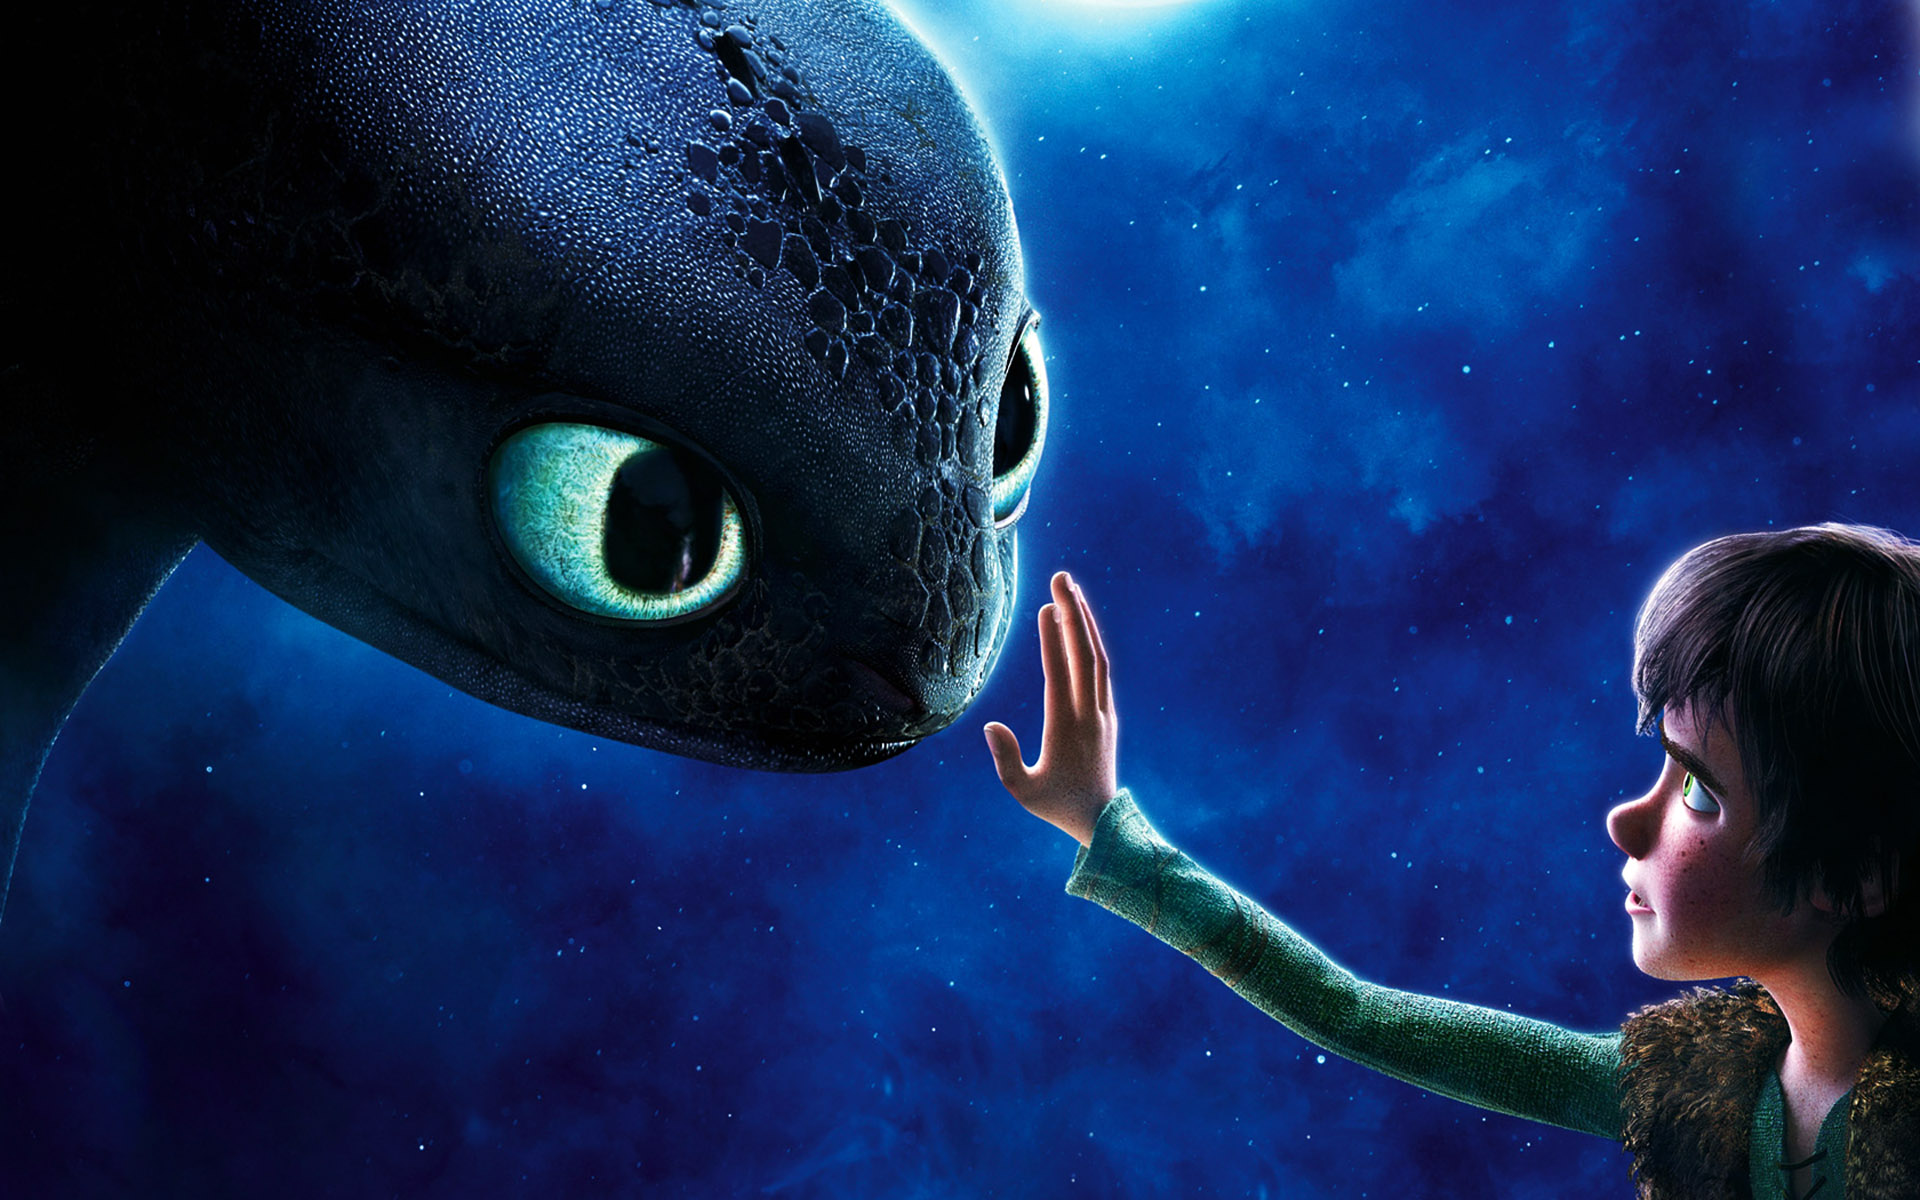 How To Train Your Dragon Wallpaper 2